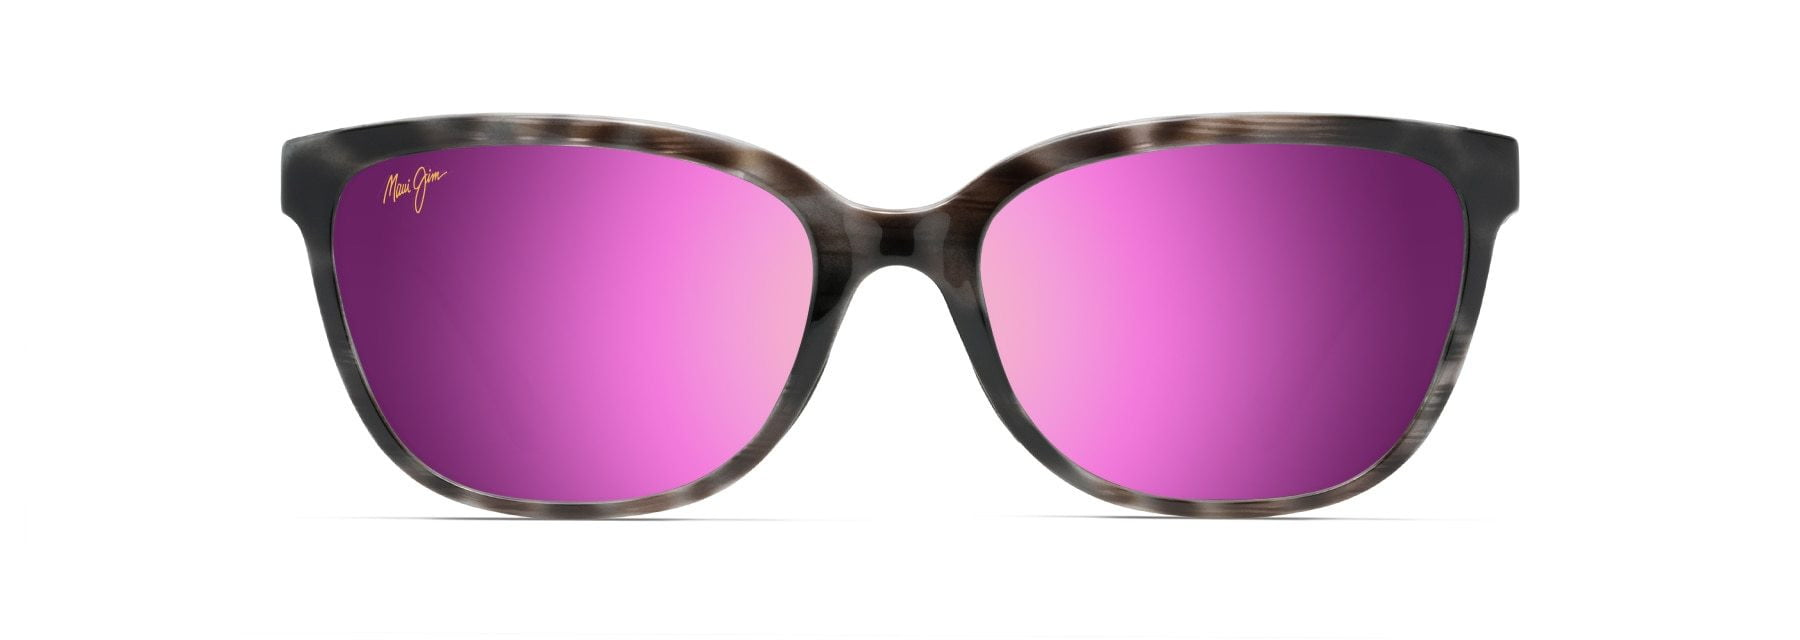 MyMaui Honi MM758-022 Sunglasses